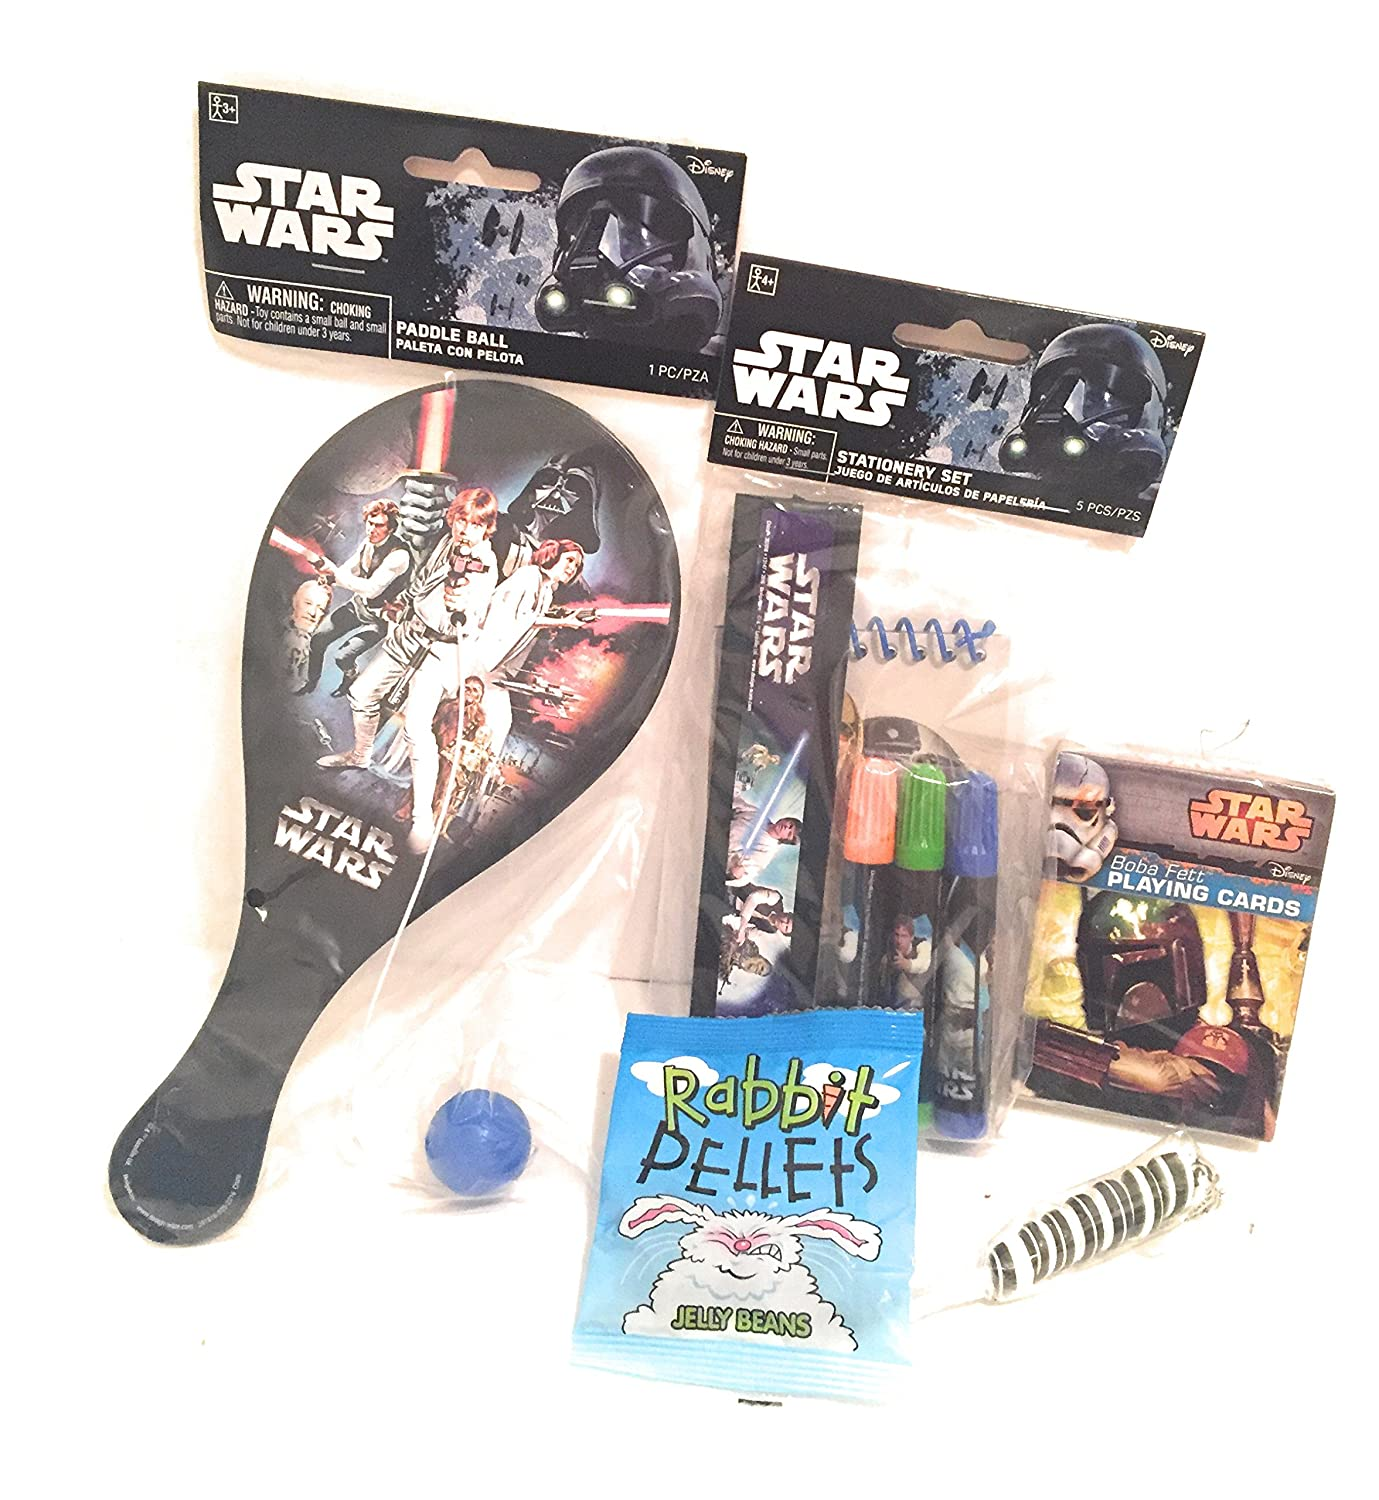 Amazon.com: Disney Star Wars Easter Holiday Gift Basket or Birthday Basket - Puzzle, Coloring Book, Paddle ball, Playing Cards,Stationery Set, Play&GoPak, ...